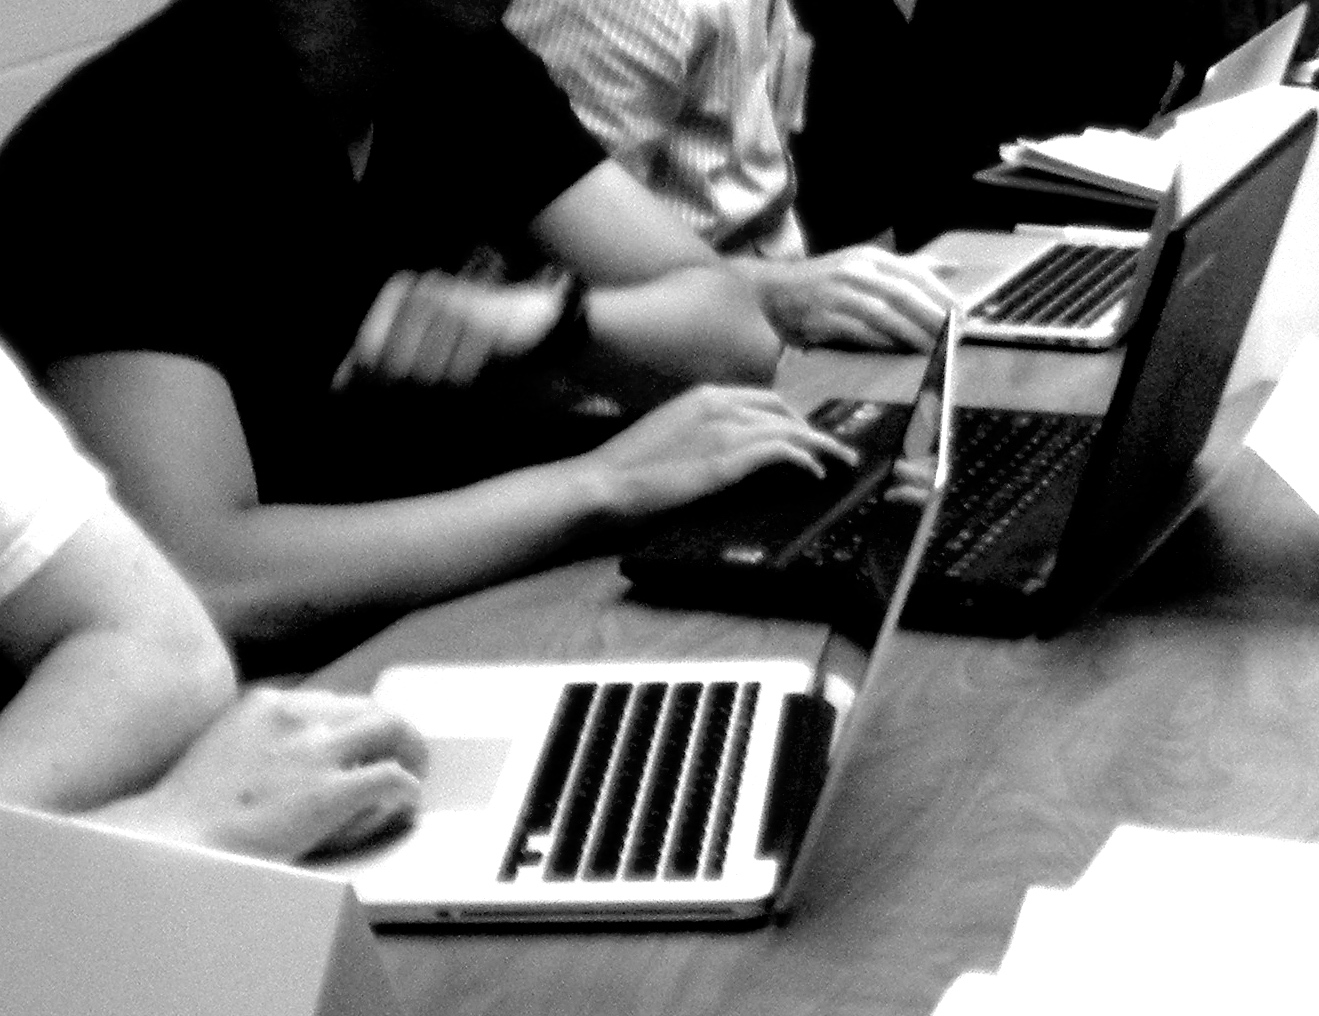 Med students working on laptops